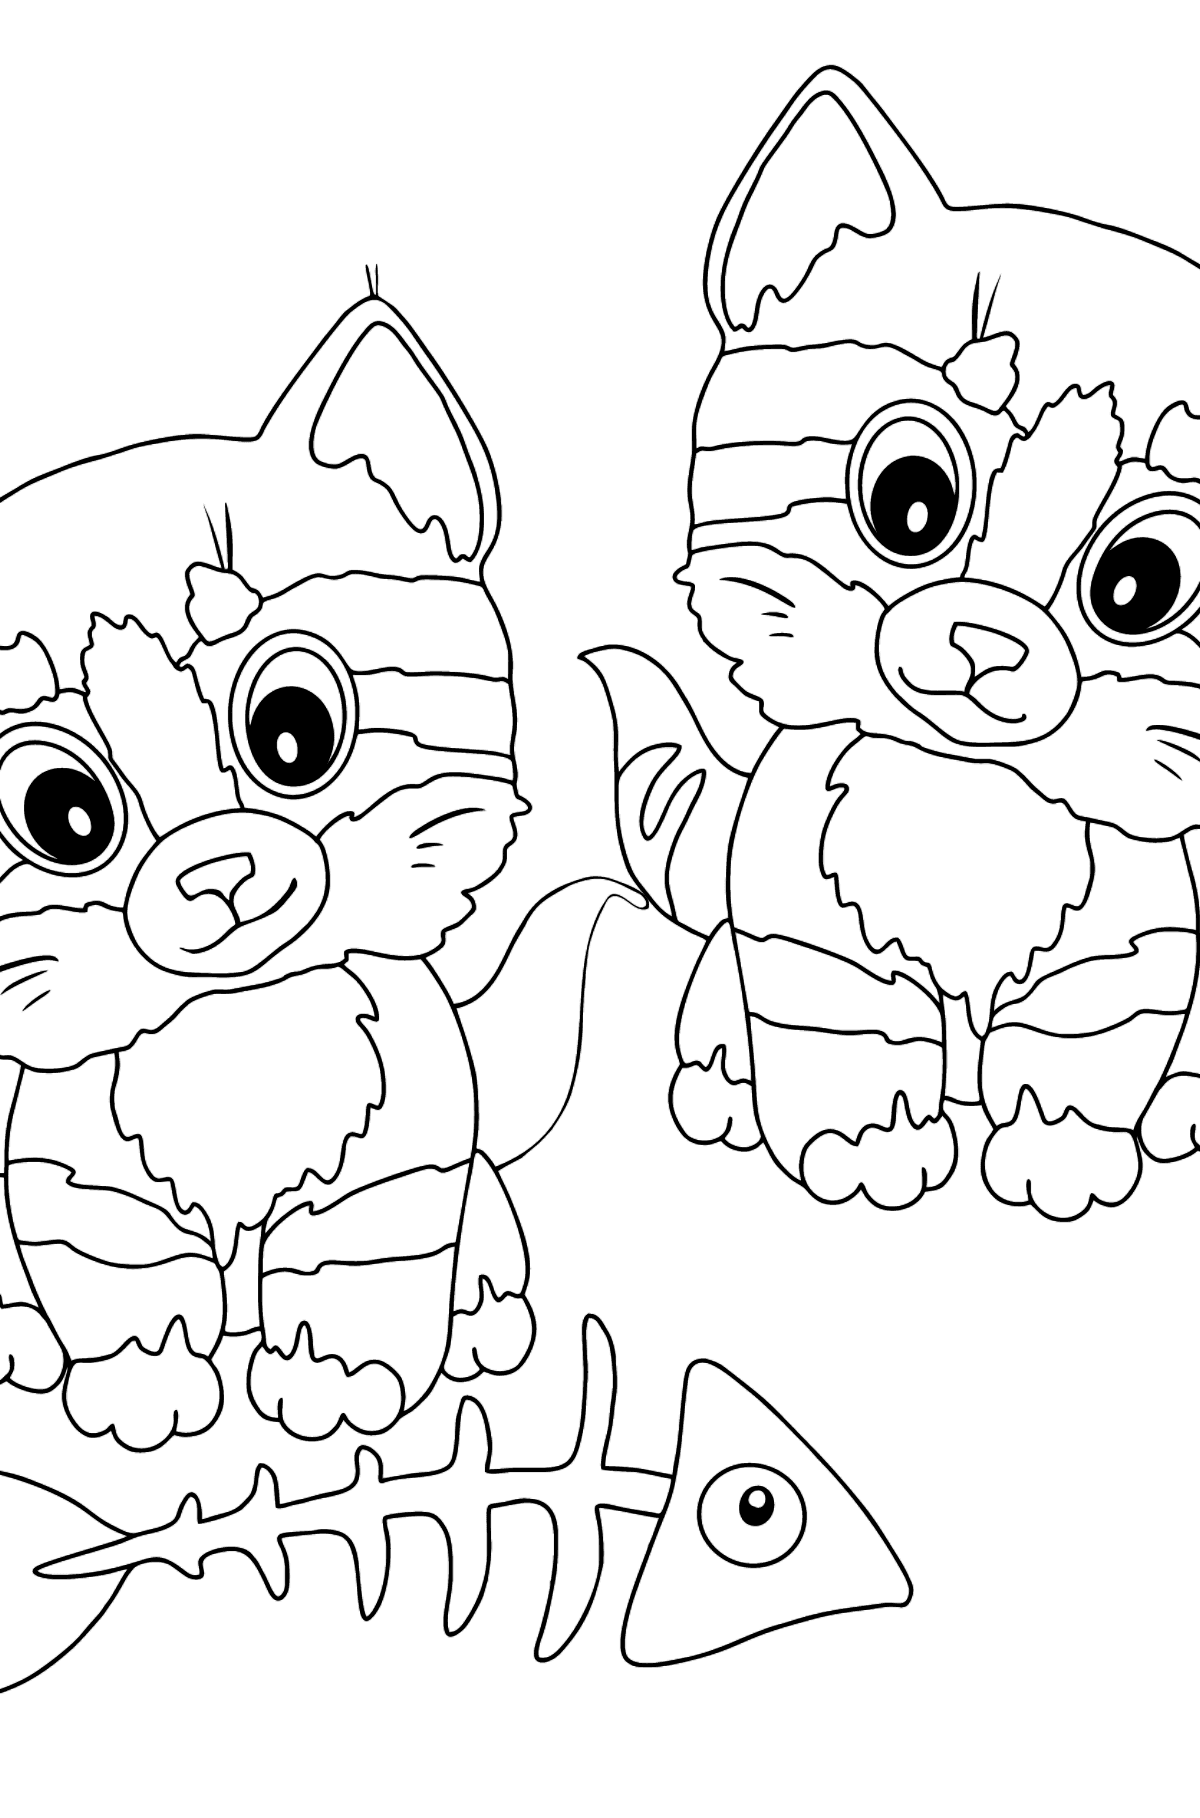 Coloring Page - Kittens are Looking at a Fish Bone - Coloring Pages for Kids